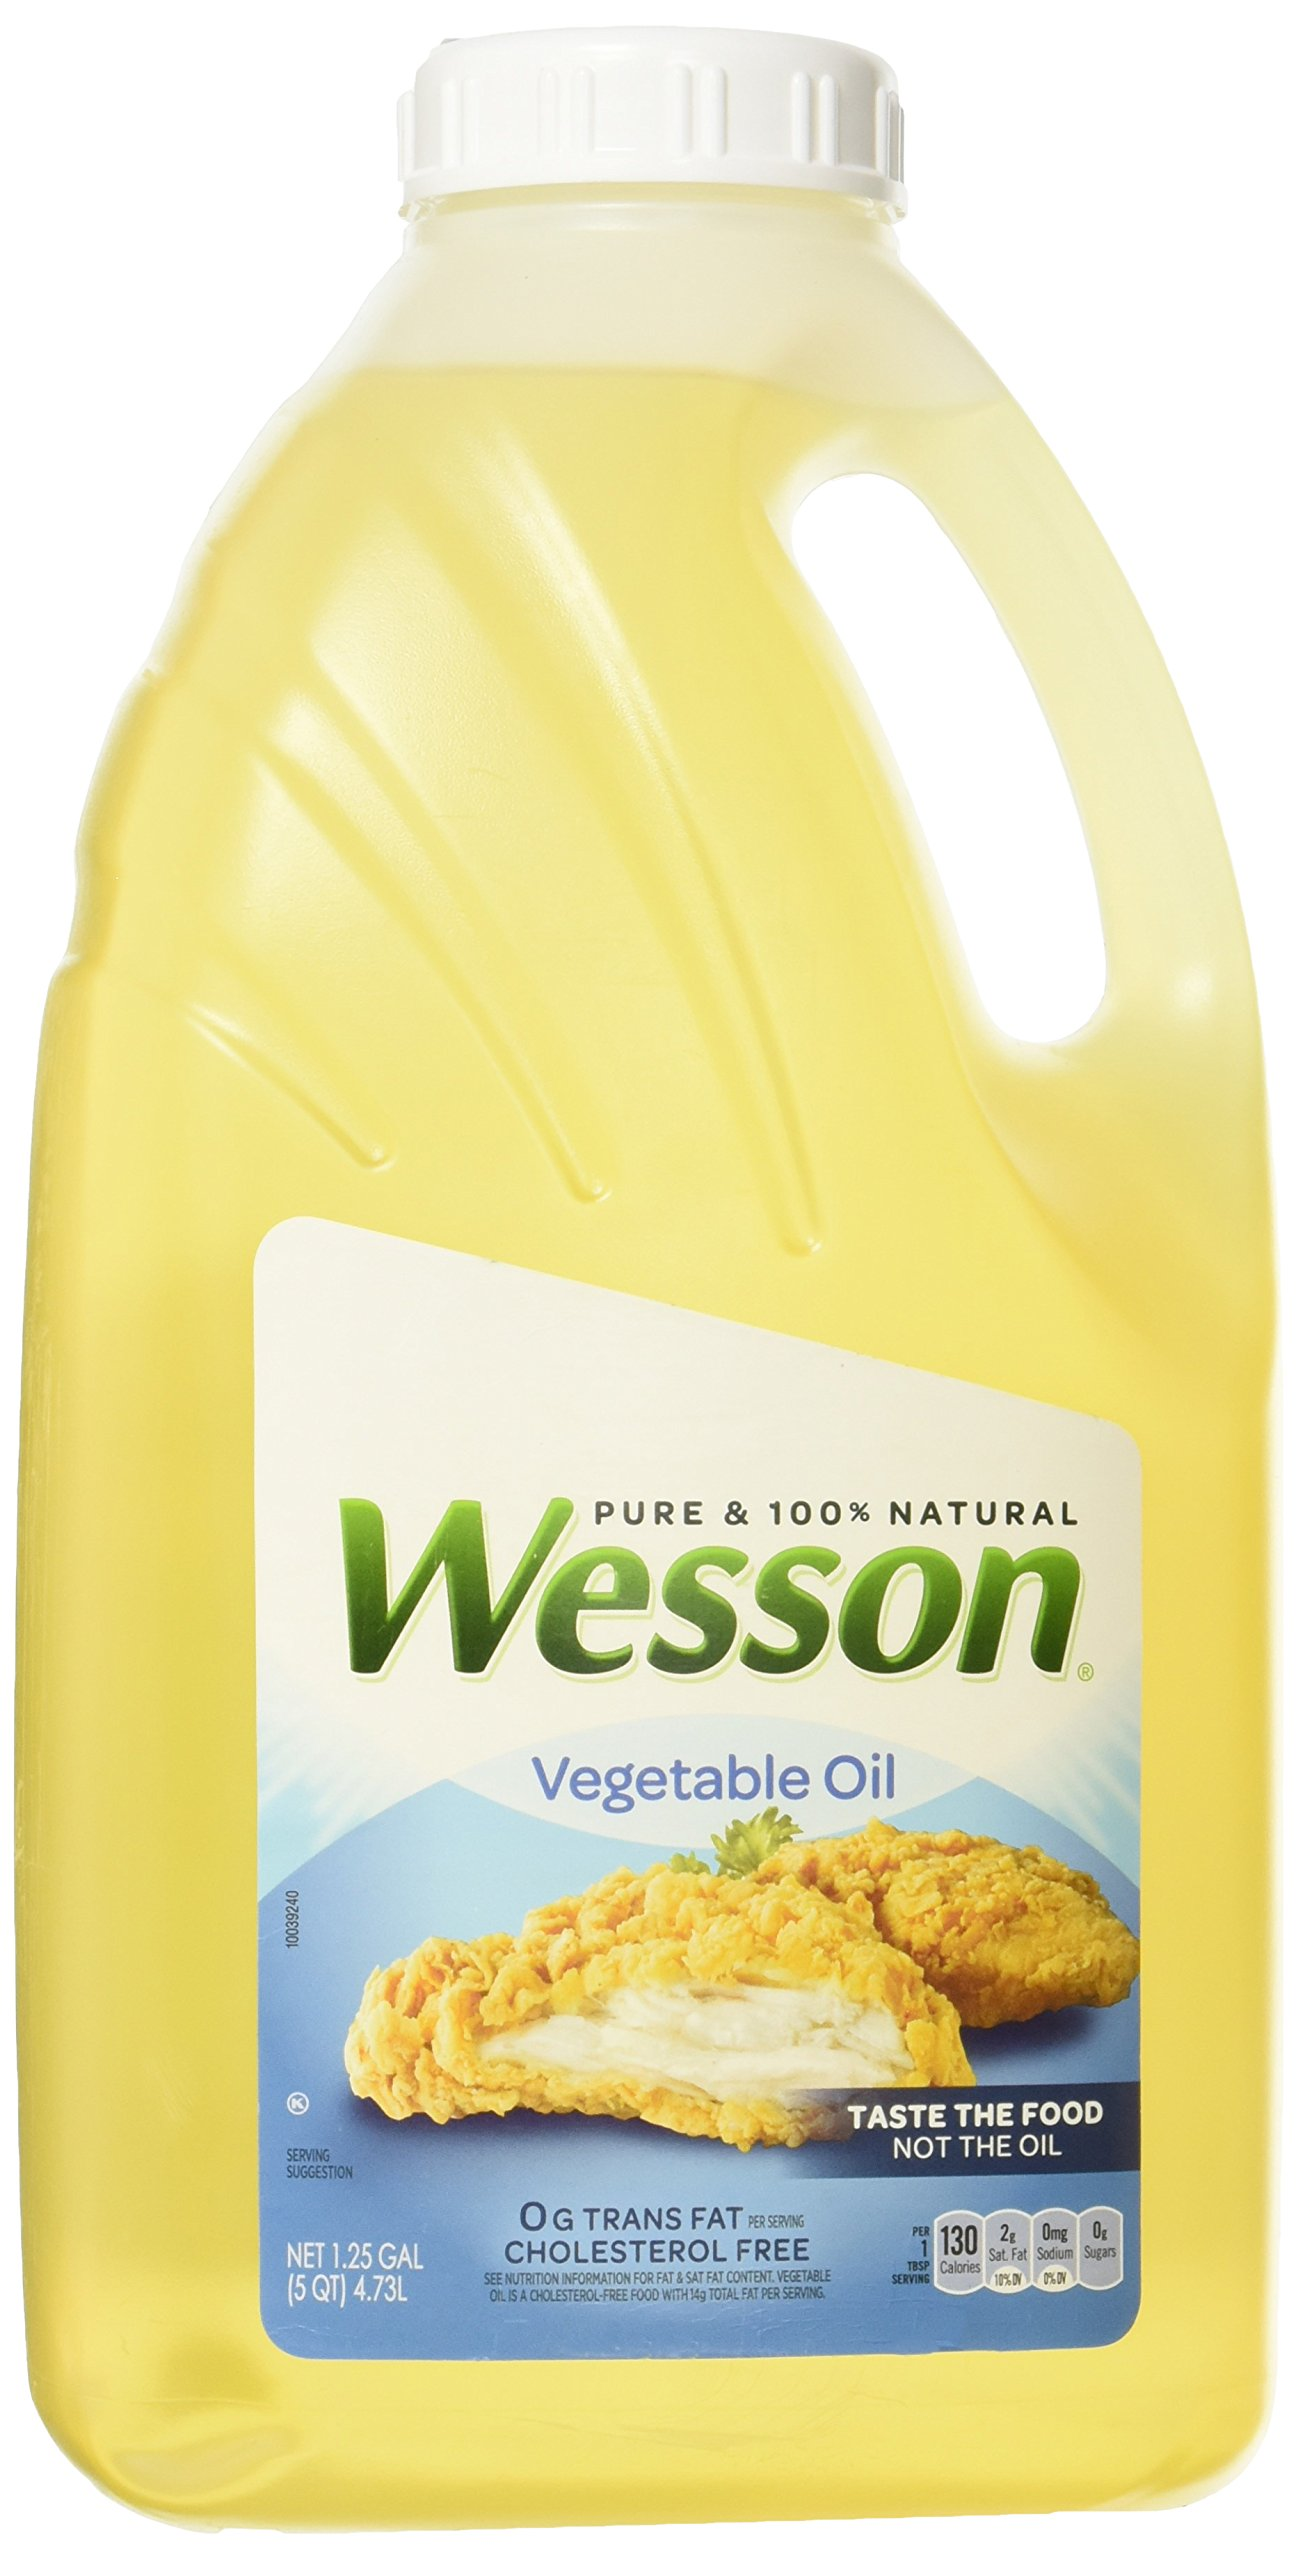 Wesson Natural Vegetable Oil, 1.25 Gallon